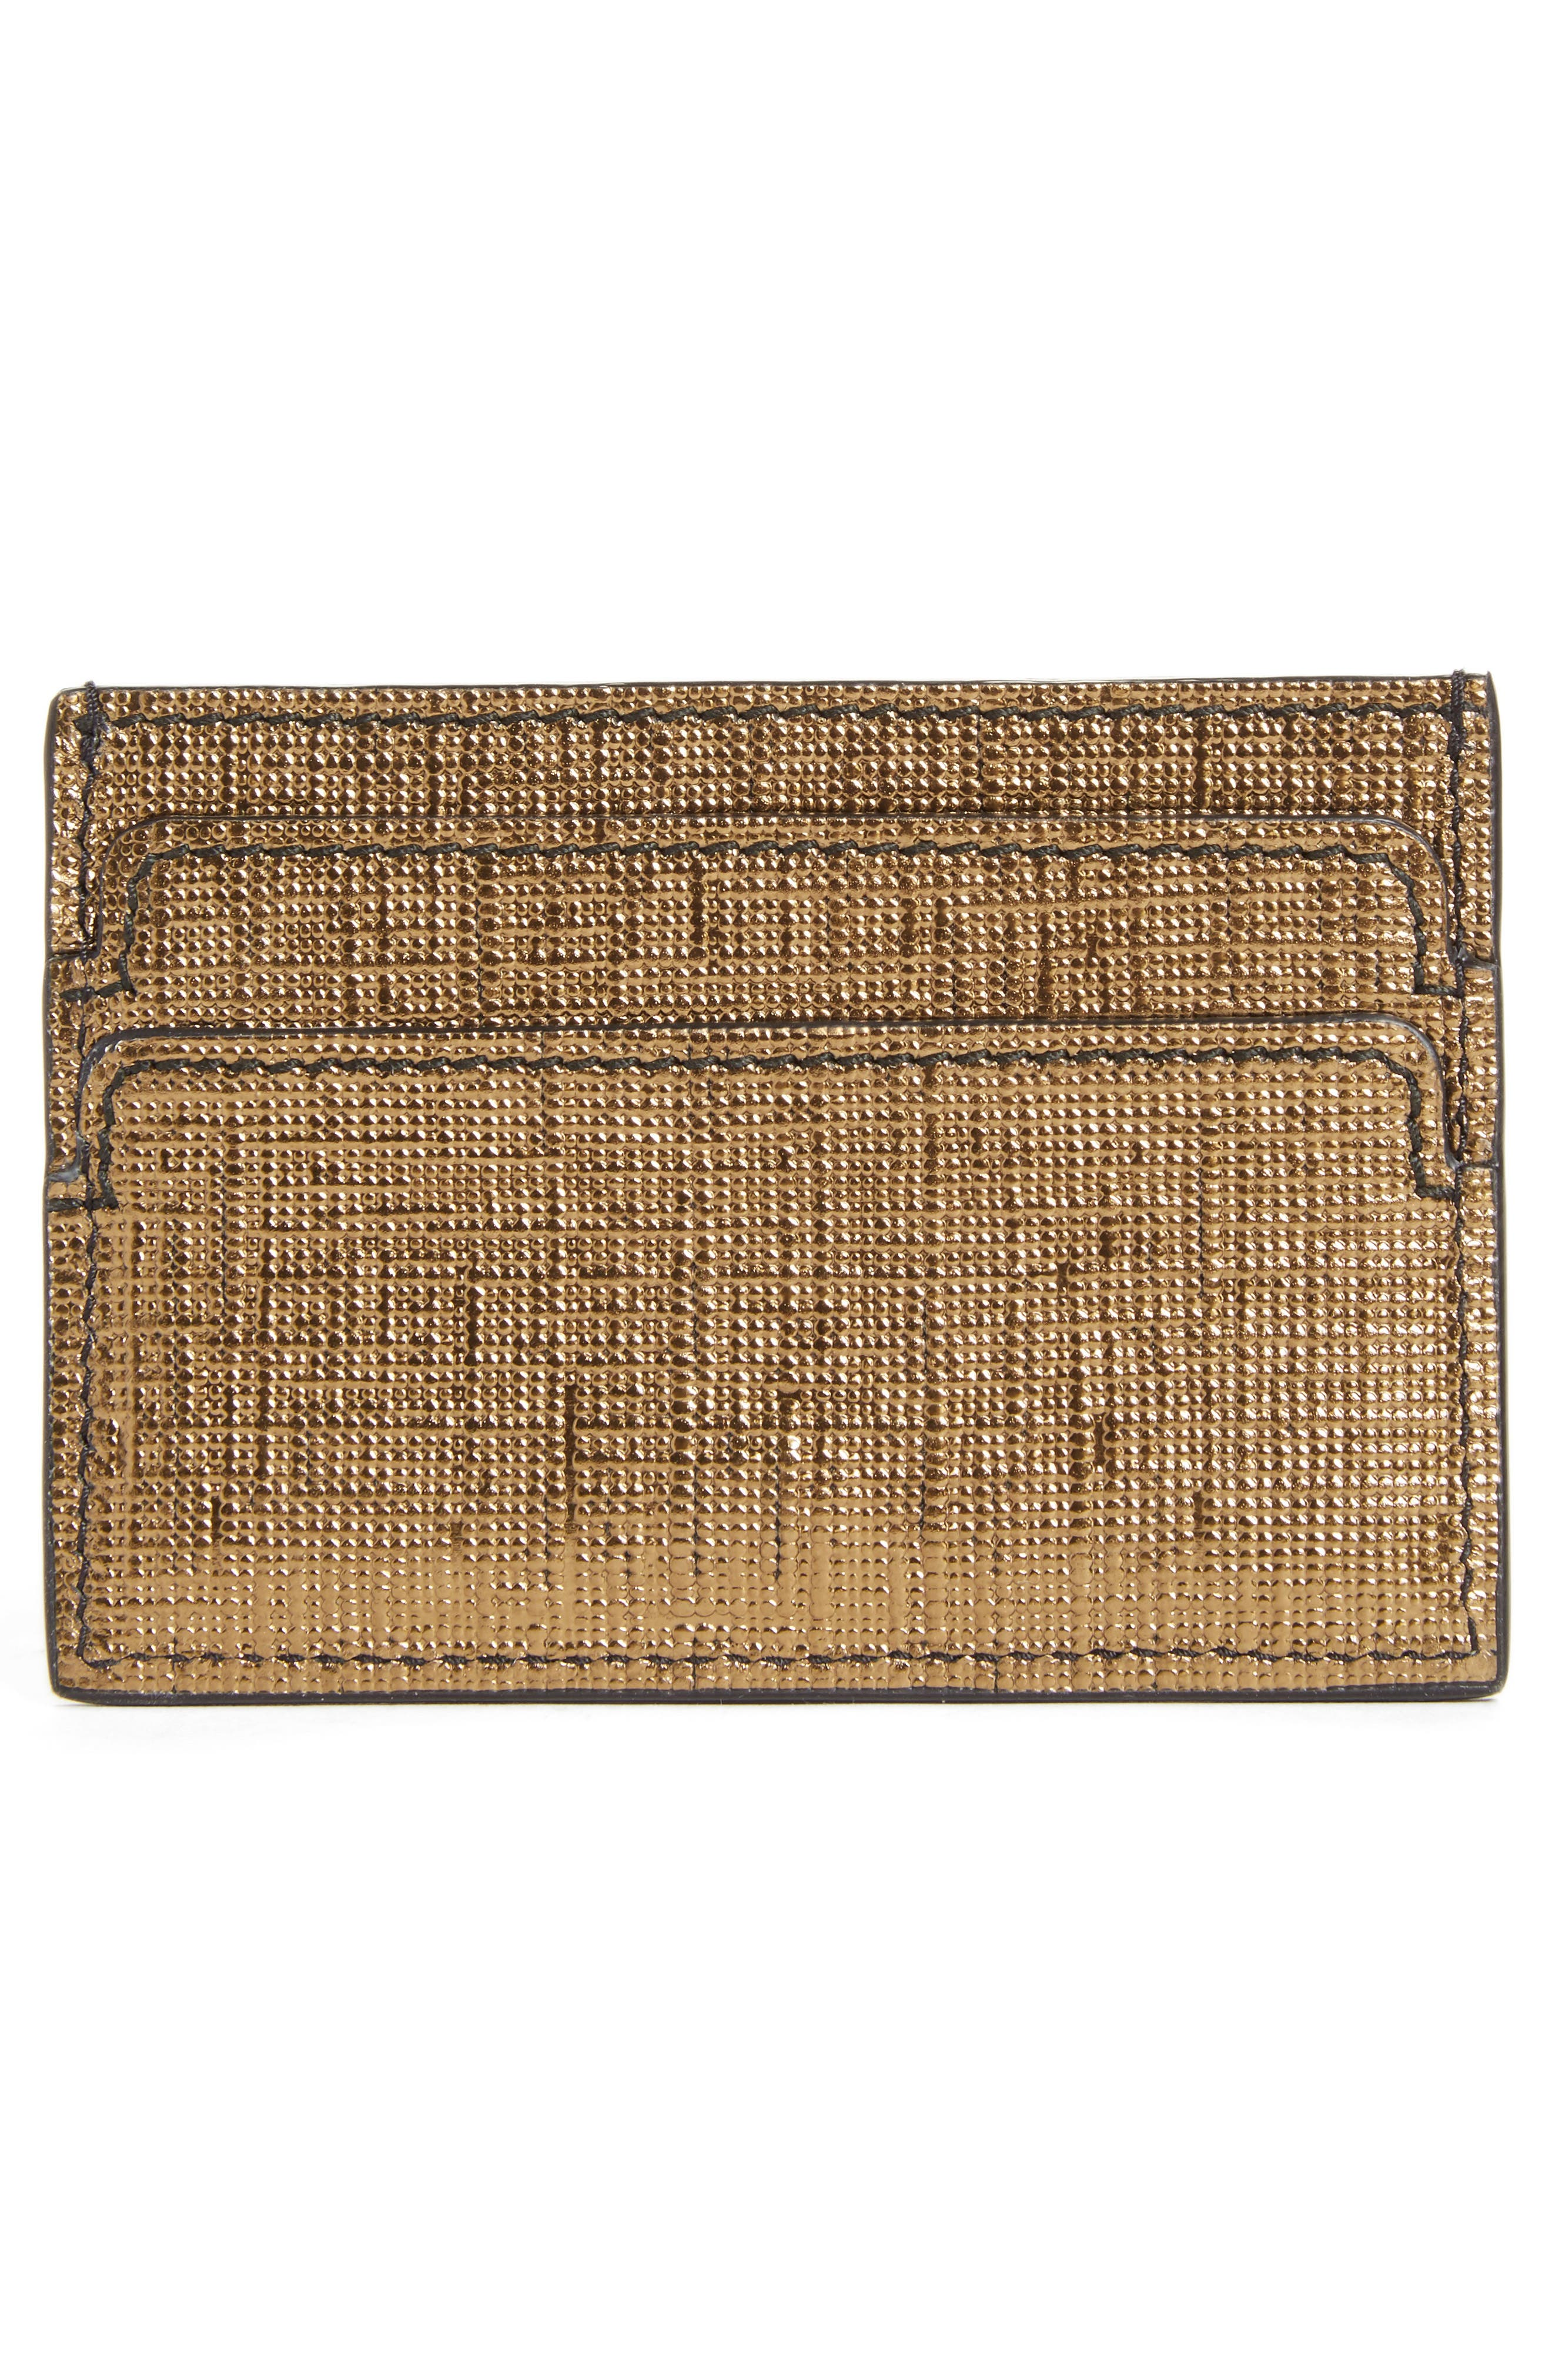 Textured Leather Card Case,                             Alternate thumbnail 2, color,                             712